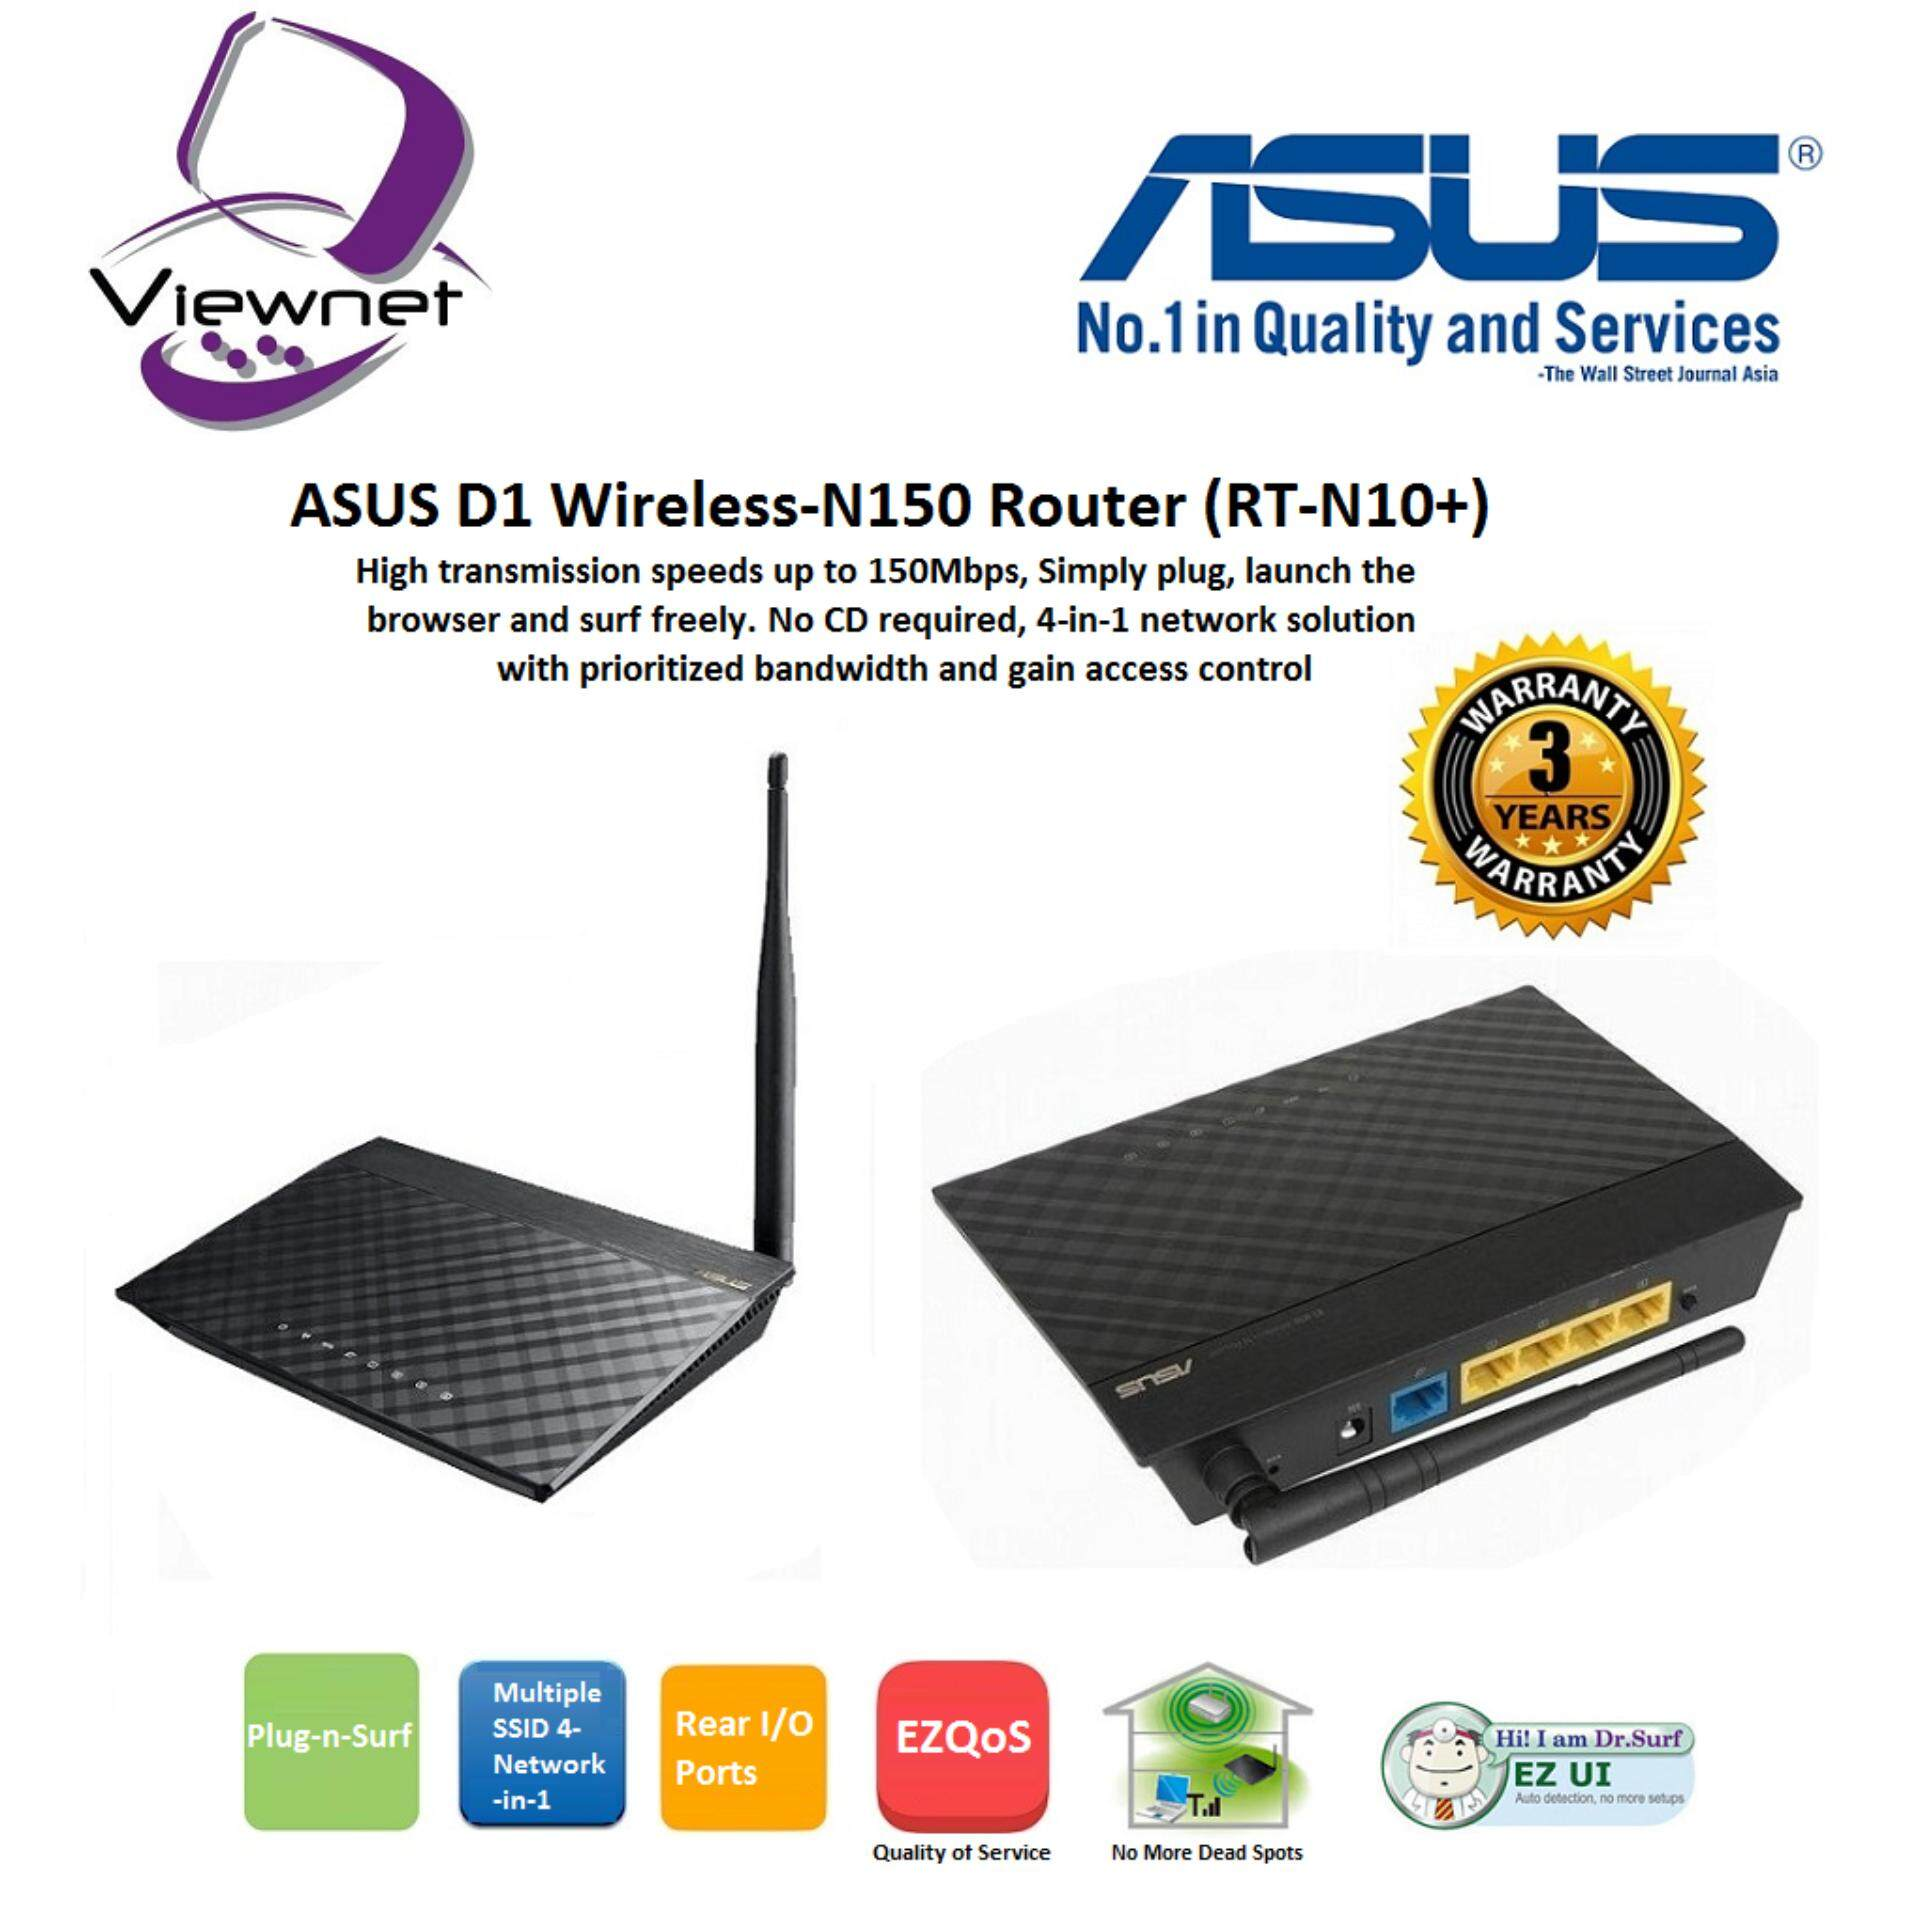 GENUINE ASUS RT-N10+ D1 Wireless-N150 Router